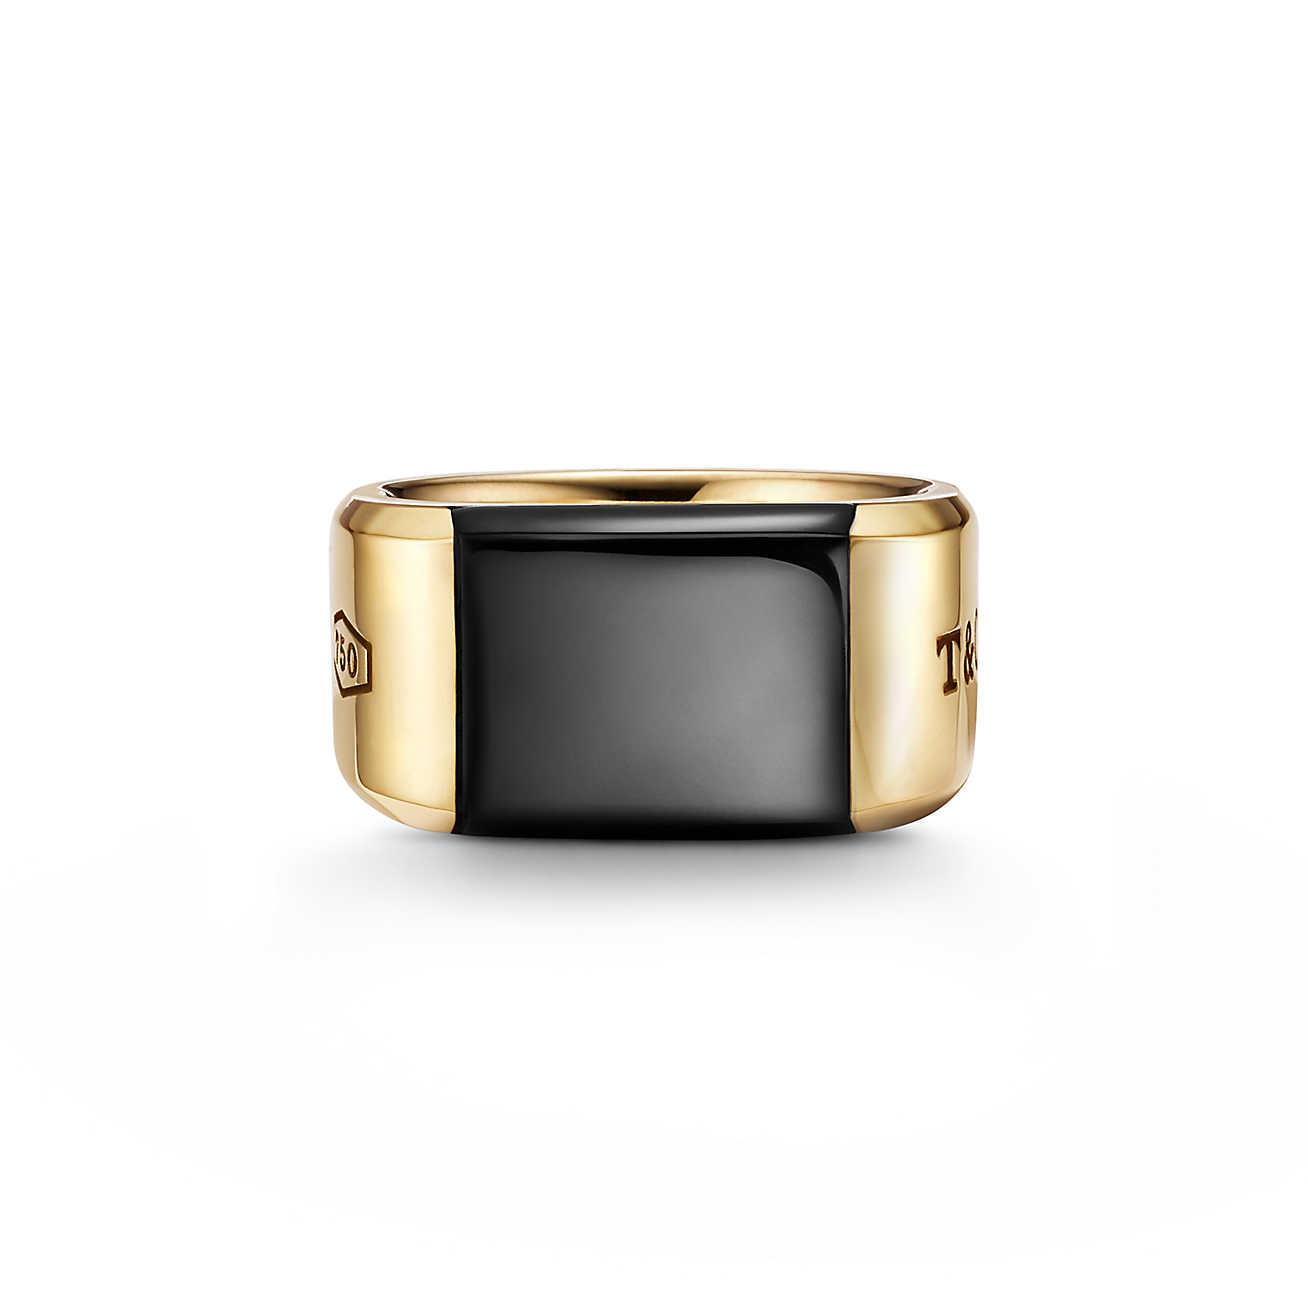 Tiffany 1837® Makers black onyx signet ring in 18k gold, 12 mm wide - Size 6